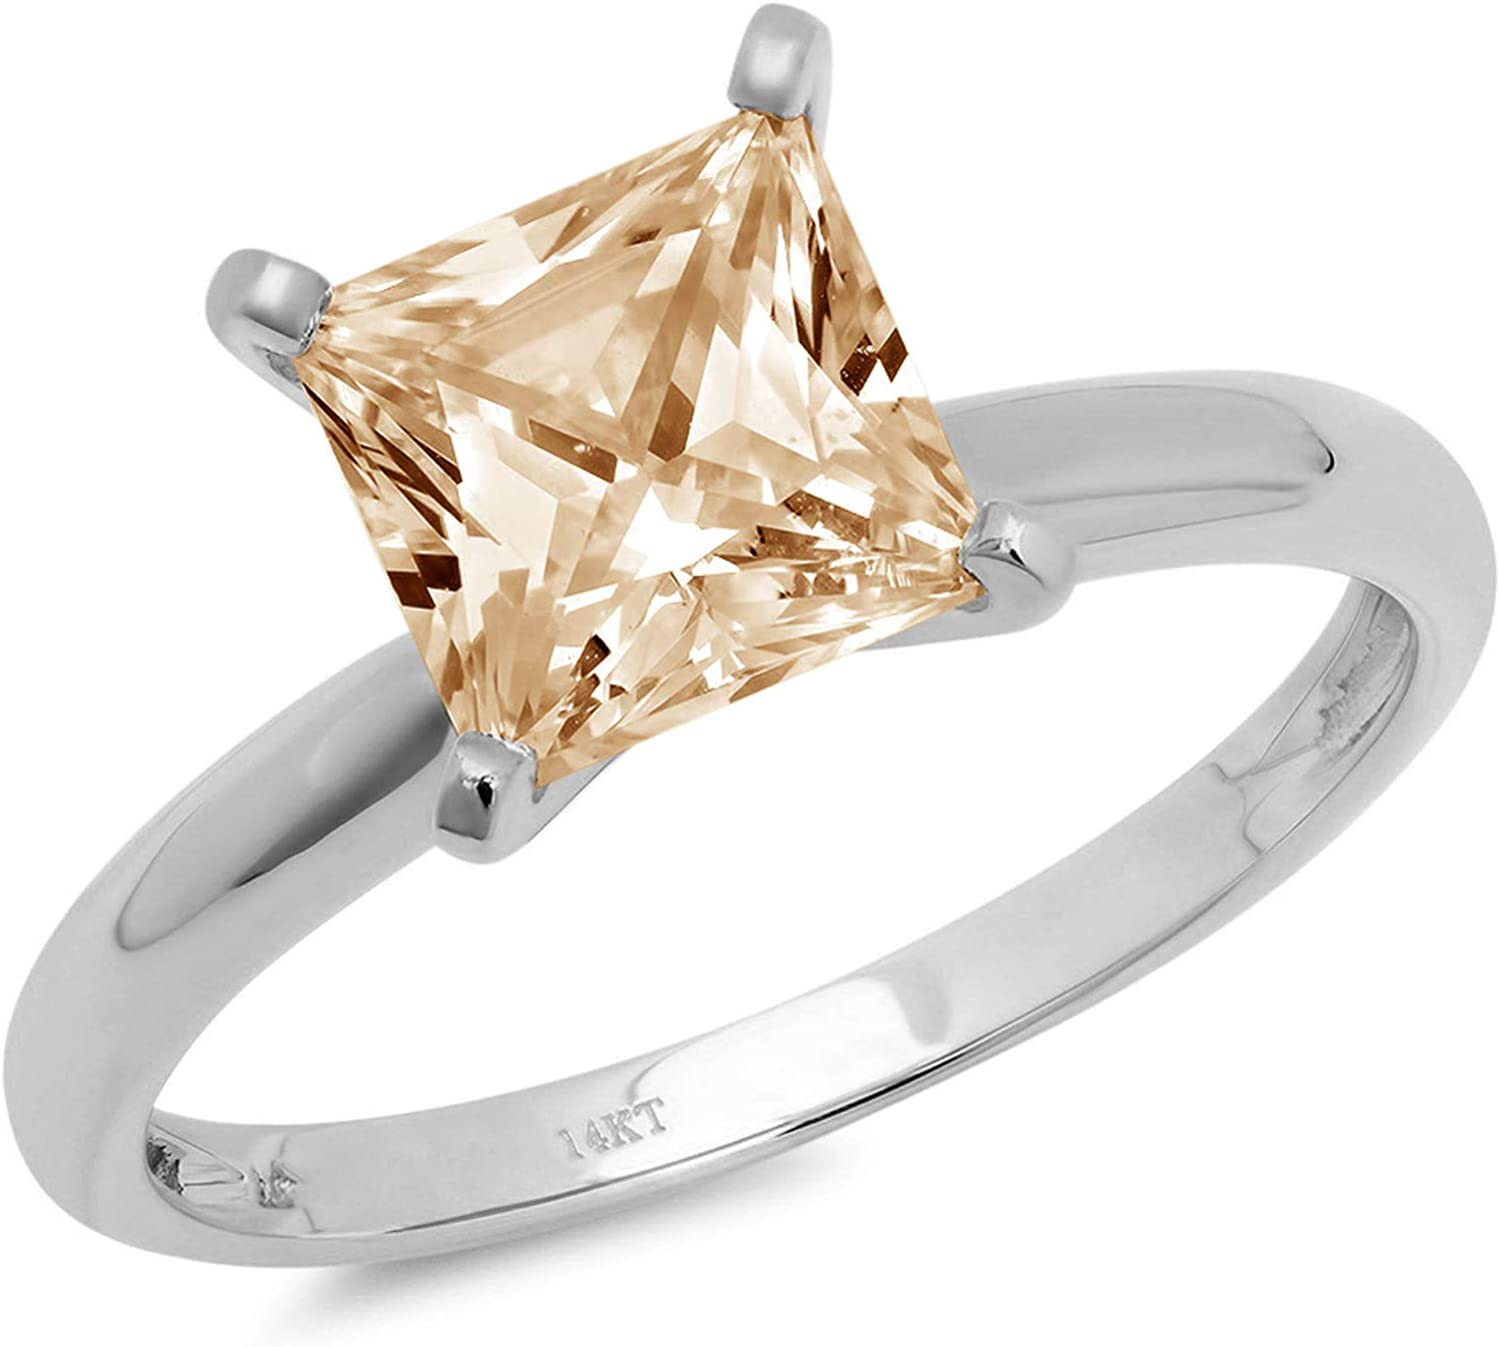 1.0 ct Brilliant Princess Cut Solitaire Flawless Stunning Yellow Moissanite Ideal 4-Prong Engagement Wedding Bridal Promise Anniversary Designer Ring Solid 18K White Gold for Women